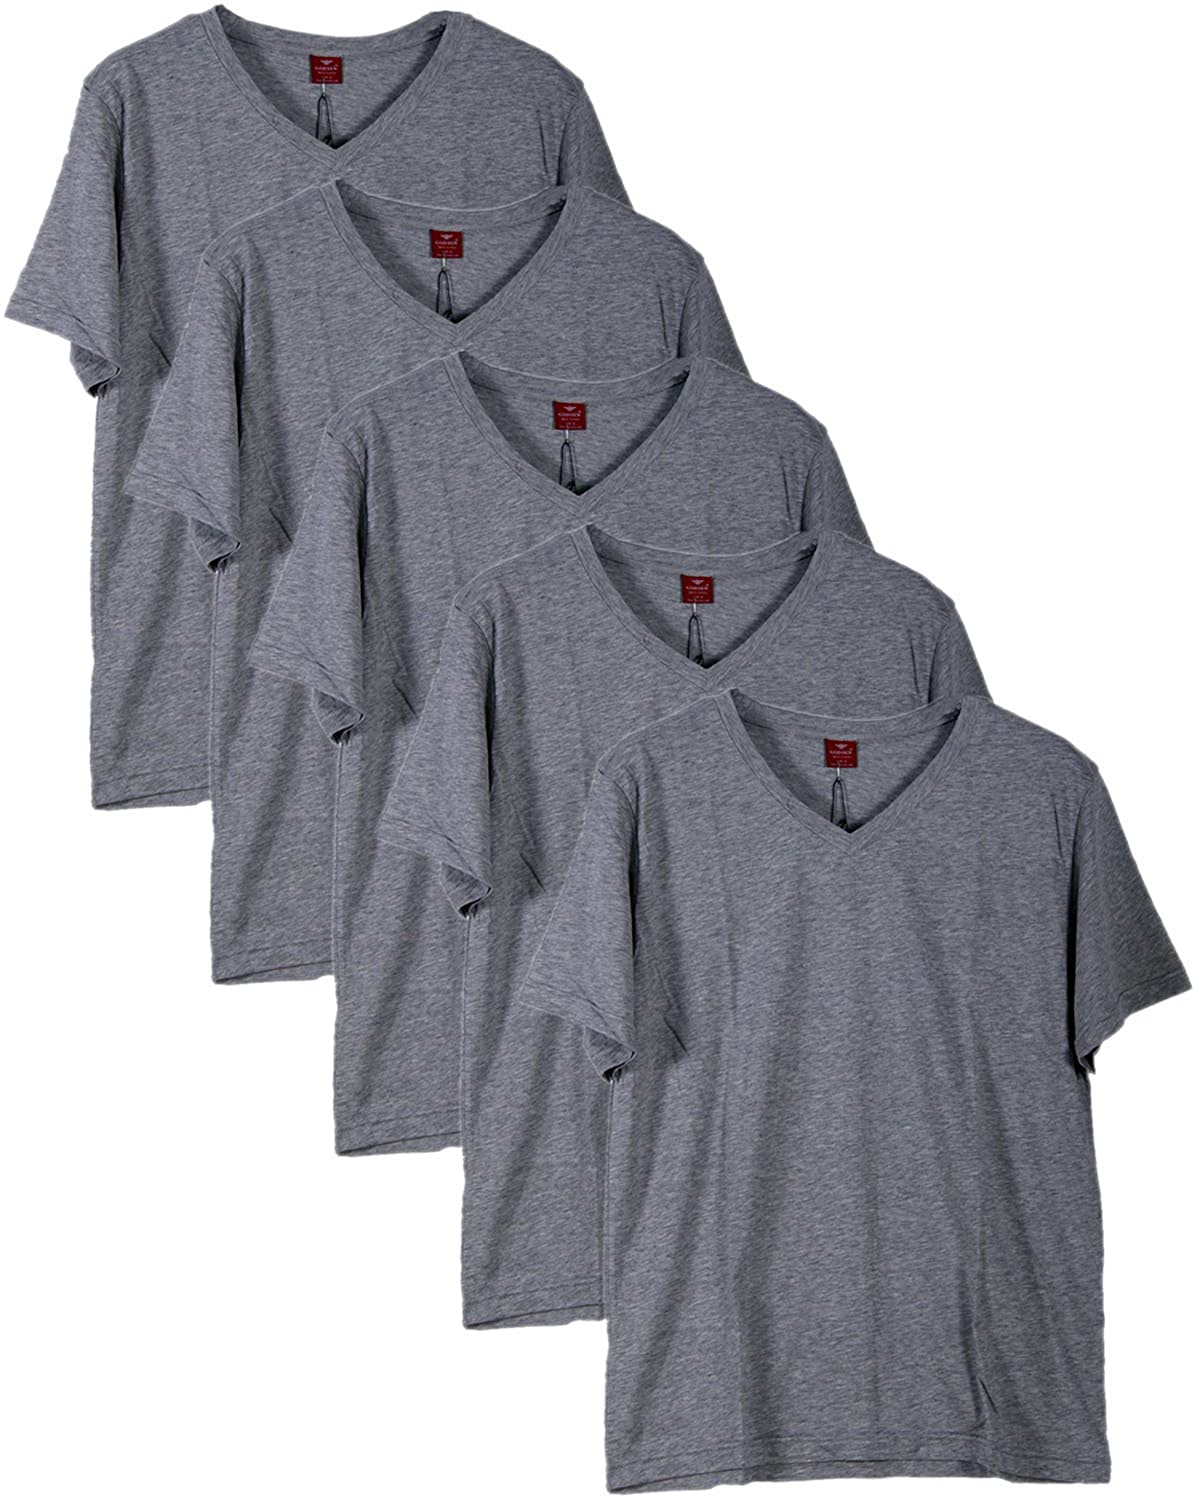 Godsen Boys 1//3//5 Pack 100/% Cotton T-Shirt V-Neck Undershirts B-8331601